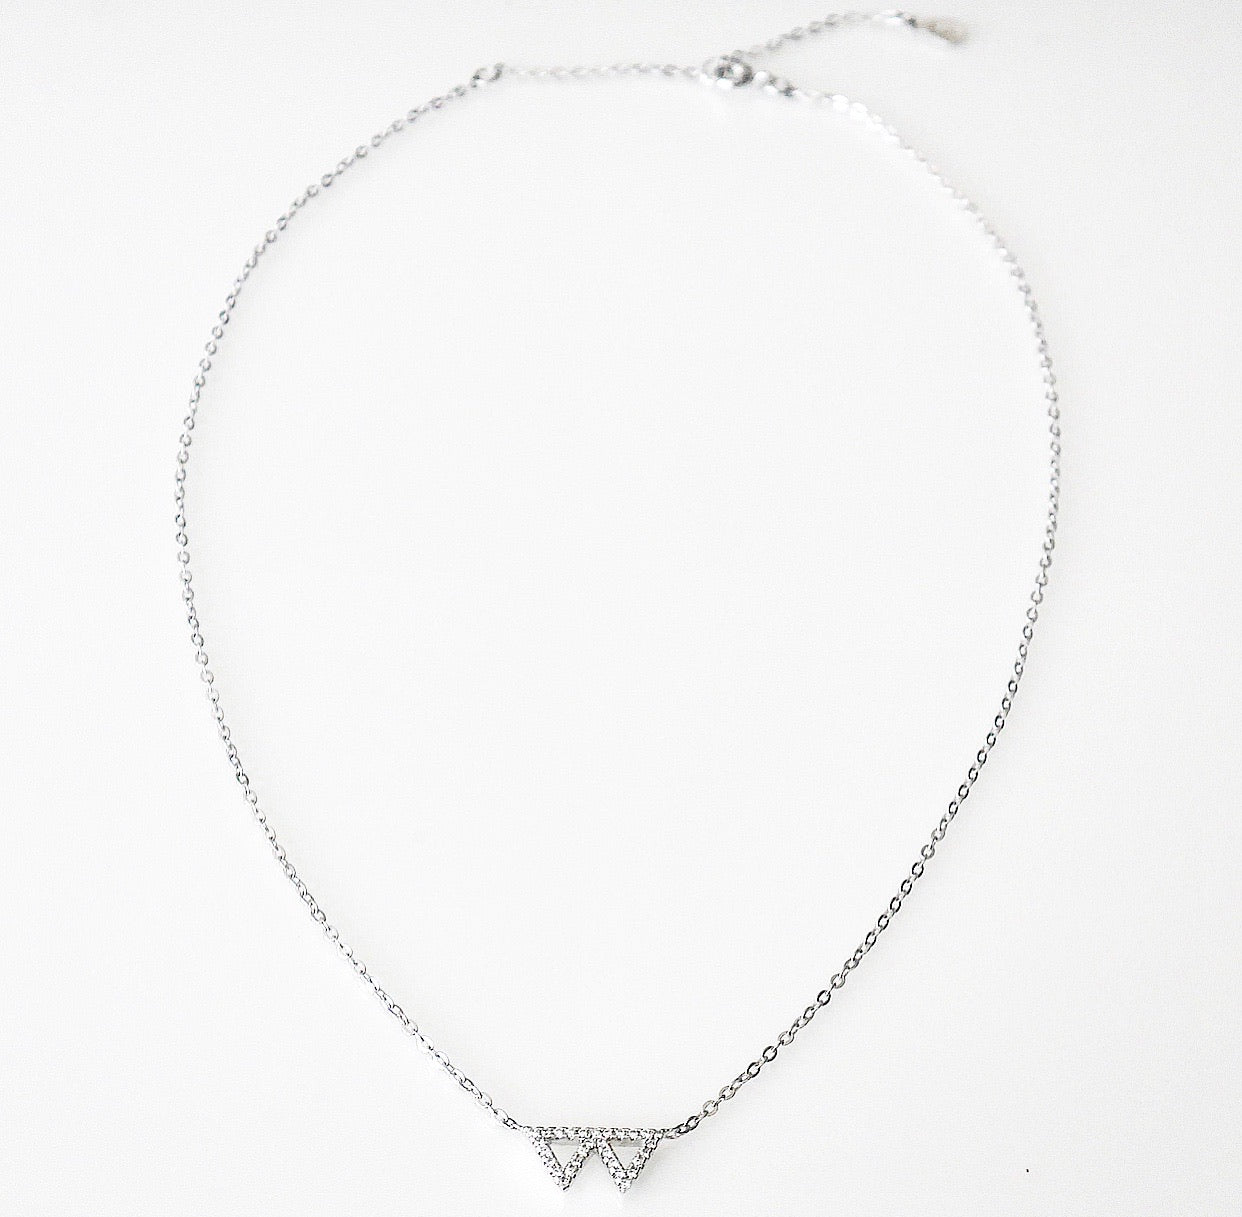 short triangle necklace, triangle necklace in sterling silver, dainty triangle necklace, simple necklace with two triangles, dainty necklace, choker, short necklace